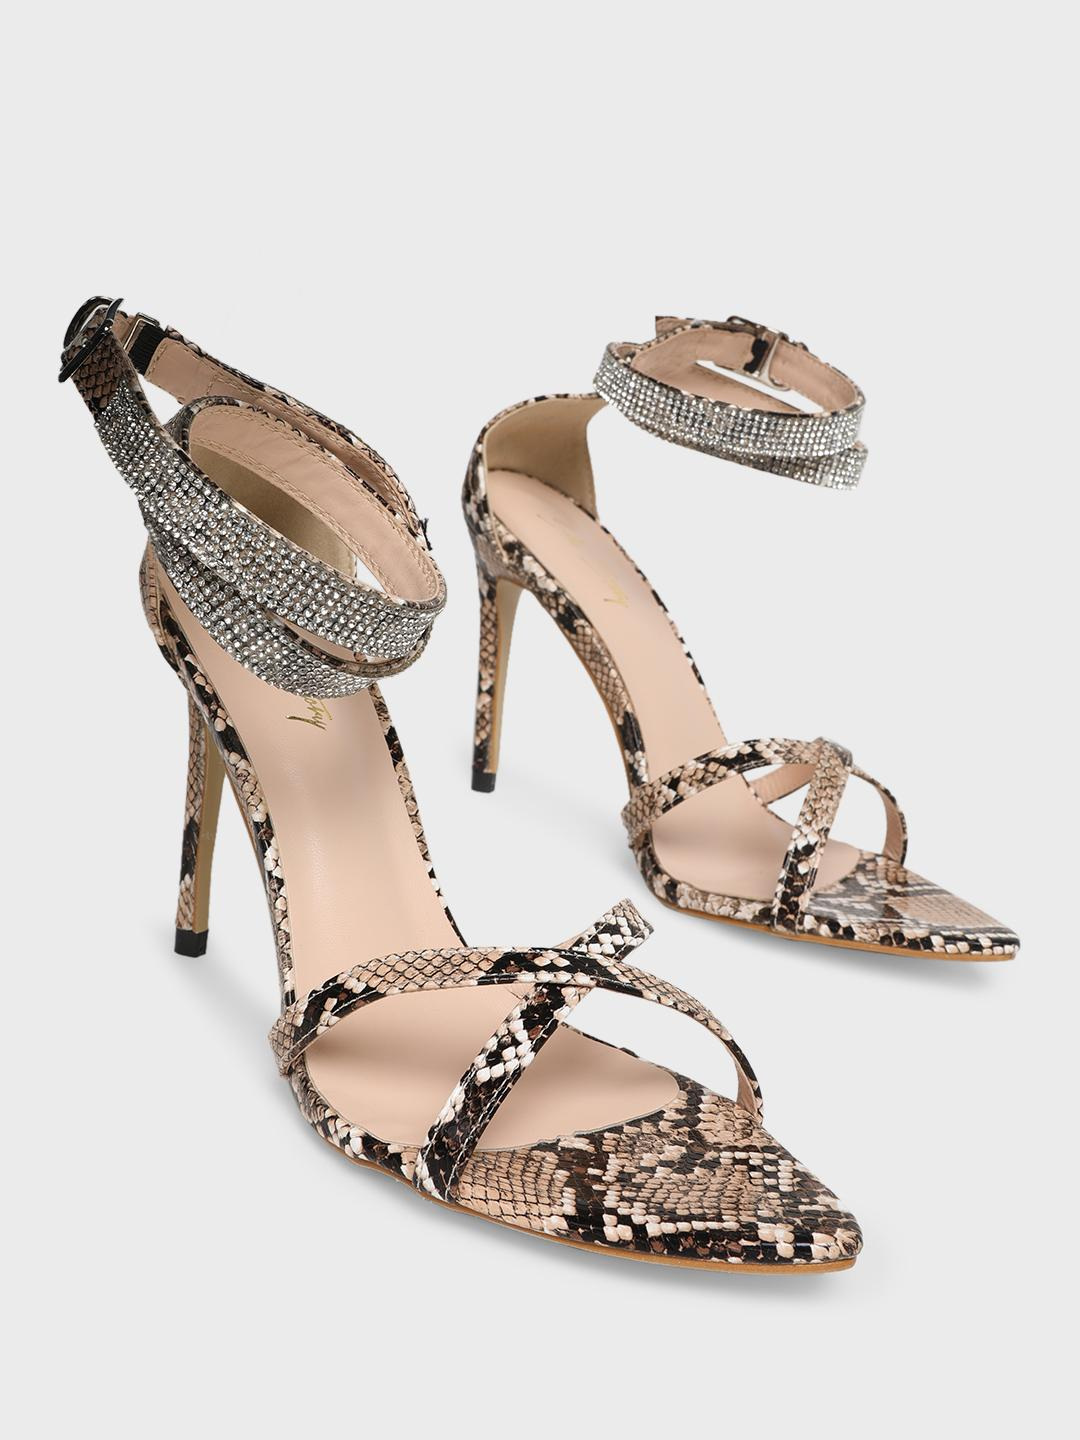 Sole Story Cream Diamante Embellished Snakeskin Print Heeled Sandals 1